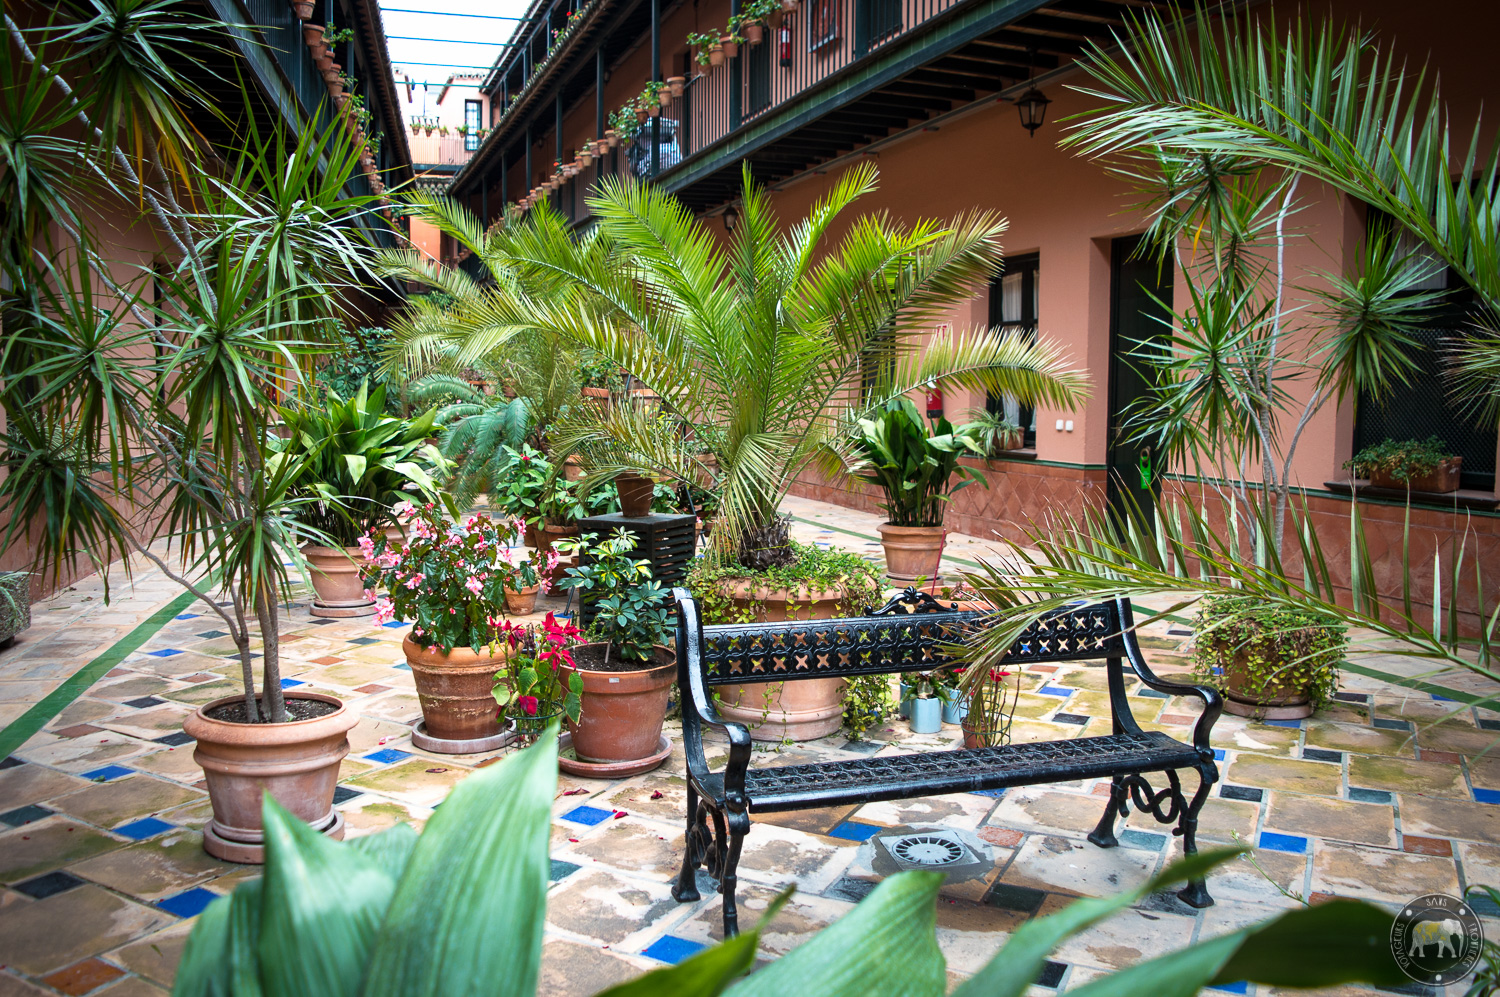 Patio de la Cartuja booked with Bookbedder - Seville, Spain